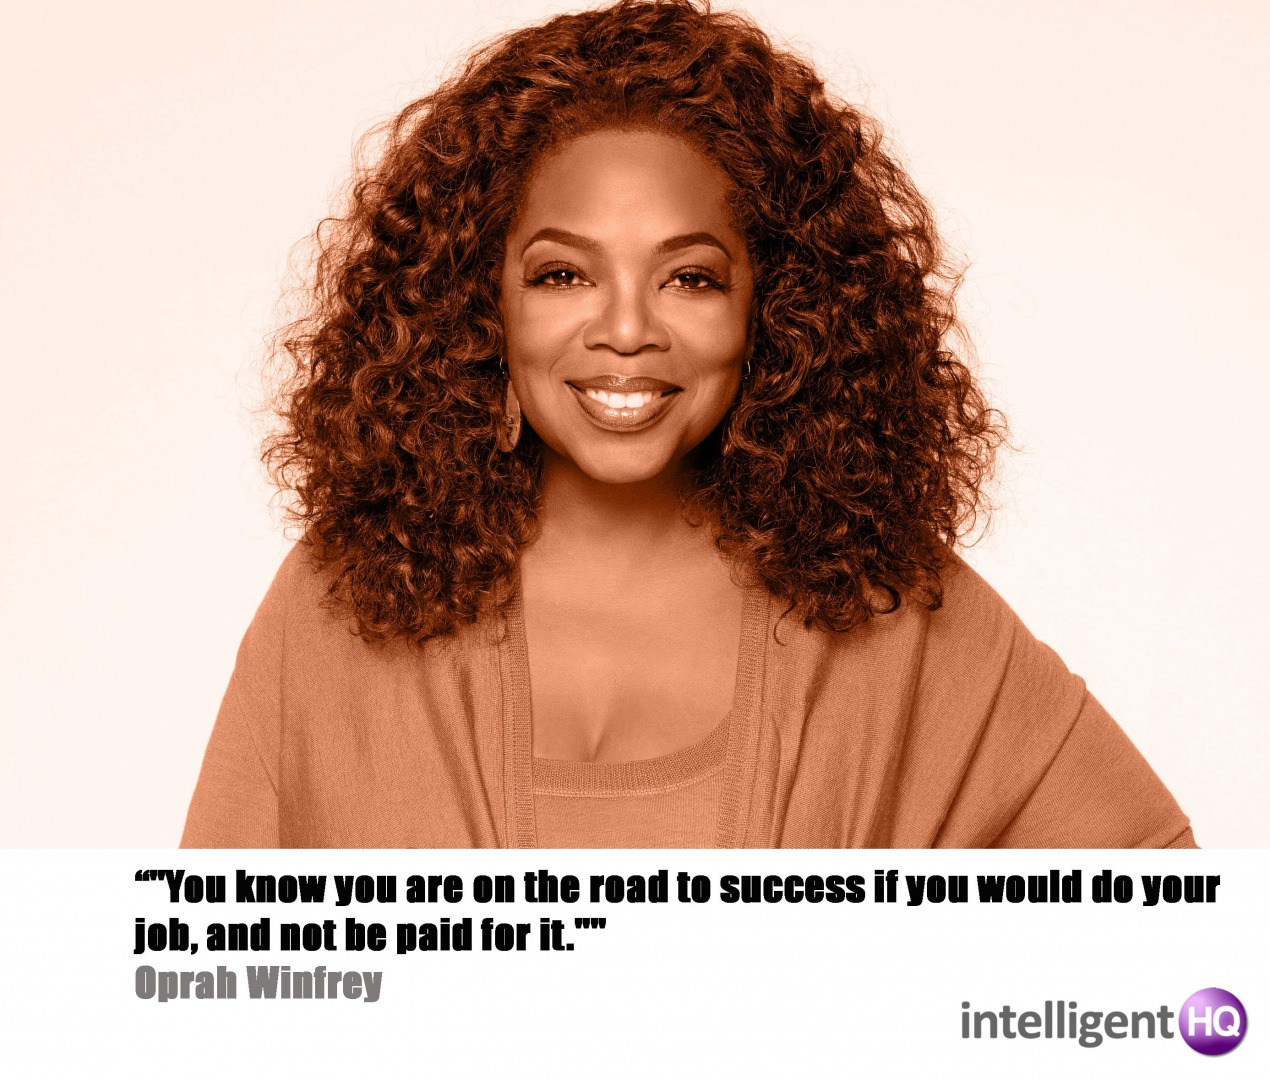 Quote by Oprah Winfrey